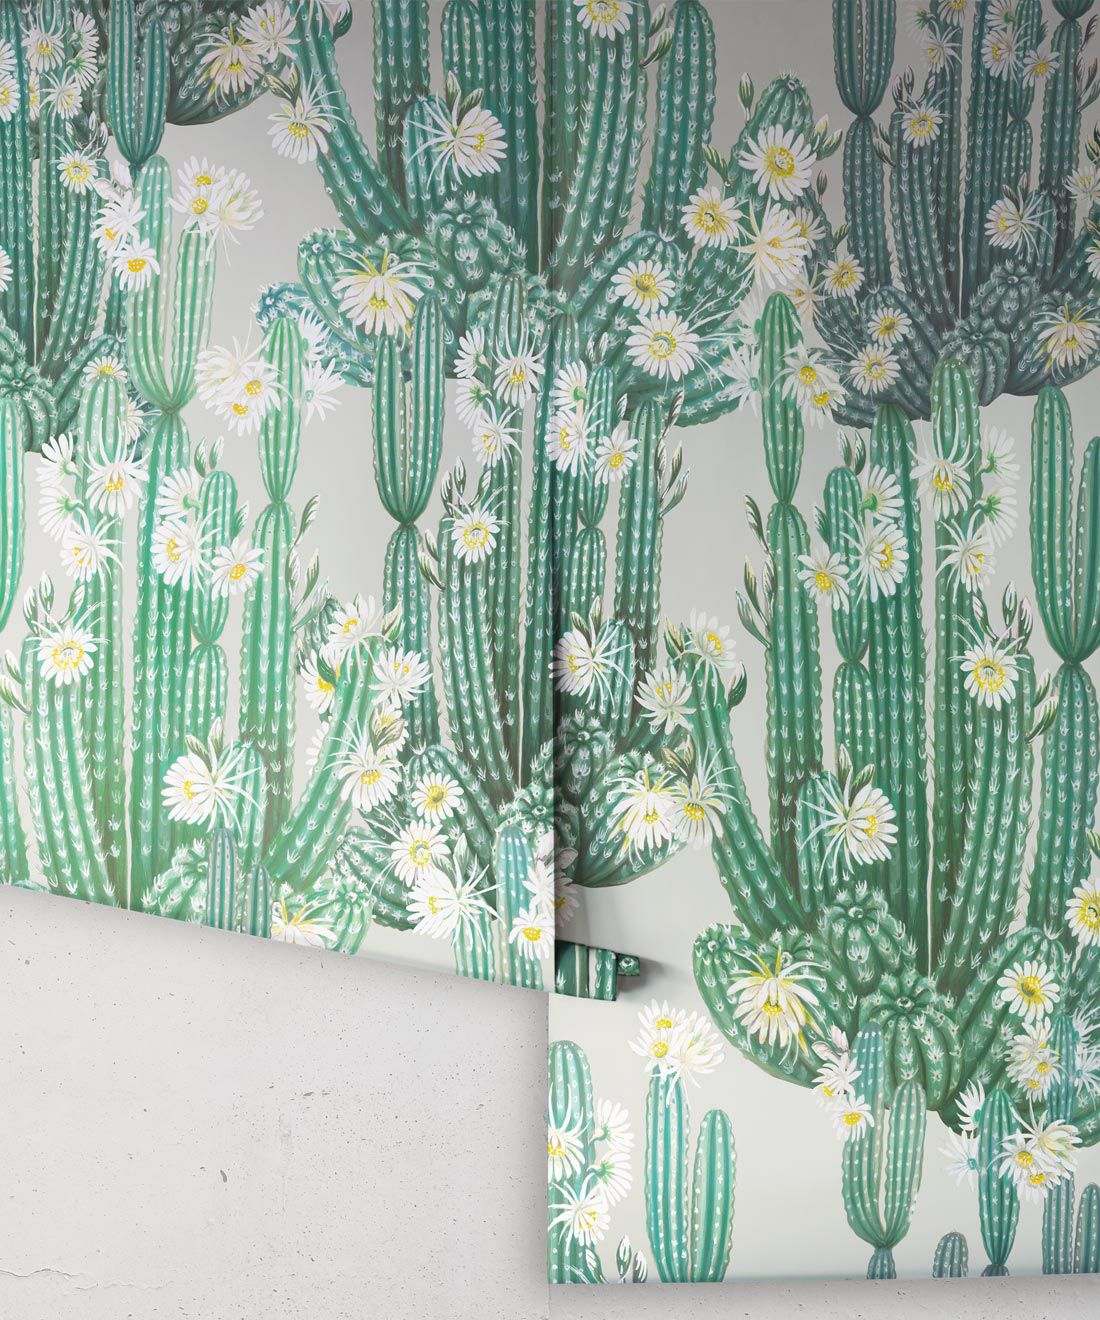 San Pedro Wallpaper Green • Cactus Wallpaper • Succulents Wallpaper • Desert Wallpaper Rolls